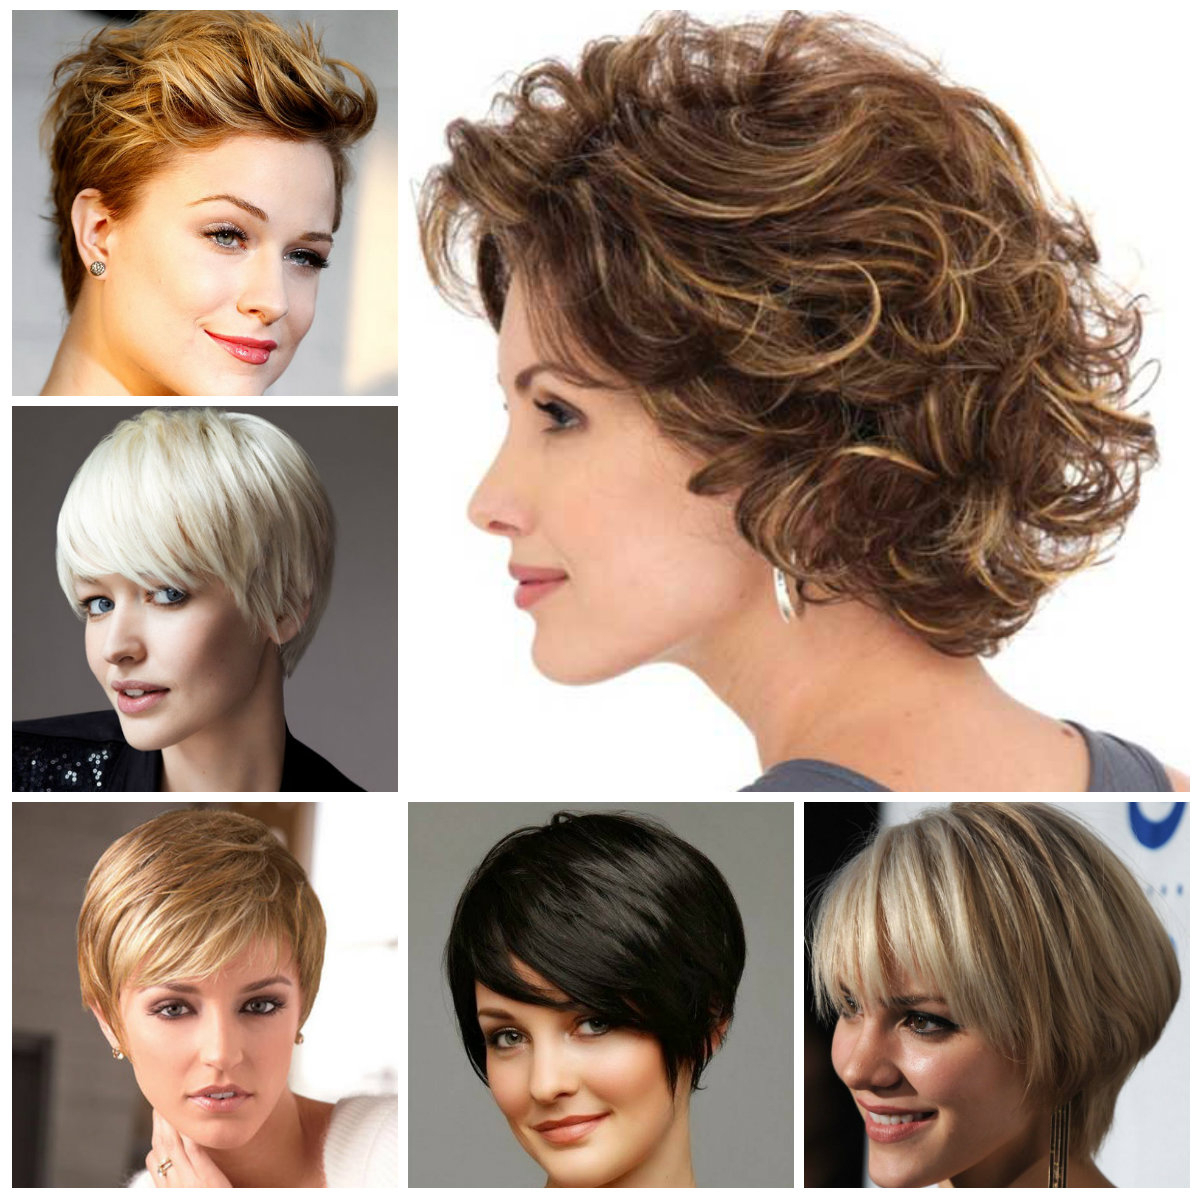 Short Layered Hairstyle Ideas For 2019 | Hairstyles For Women 2019 With Regard To Curly Golden Brown Pixie Hairstyles (View 11 of 20)